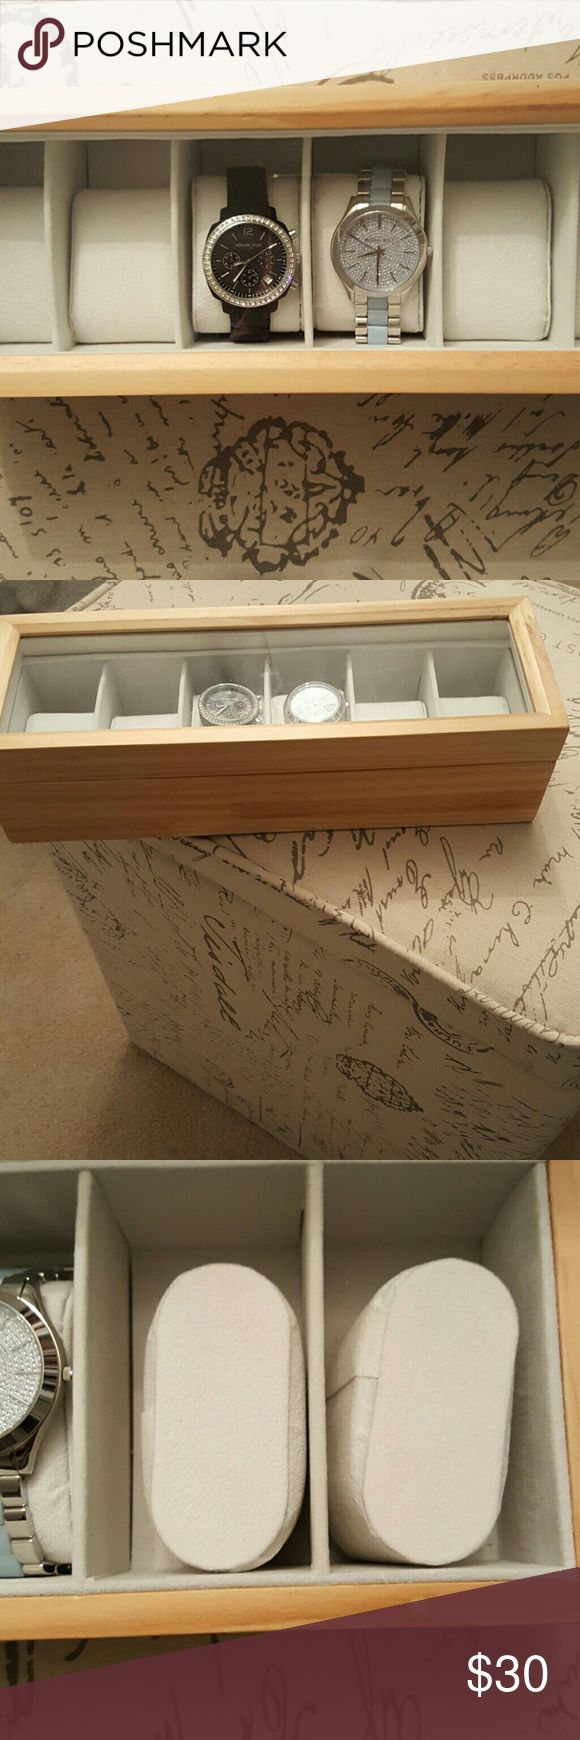 Watch display case Light grain wood, clear window like lid makes it easy to select your watch of the day. Holds 6 watches. Only used a short time because I upgraded to a larger case. Like new condition Accessories Watches